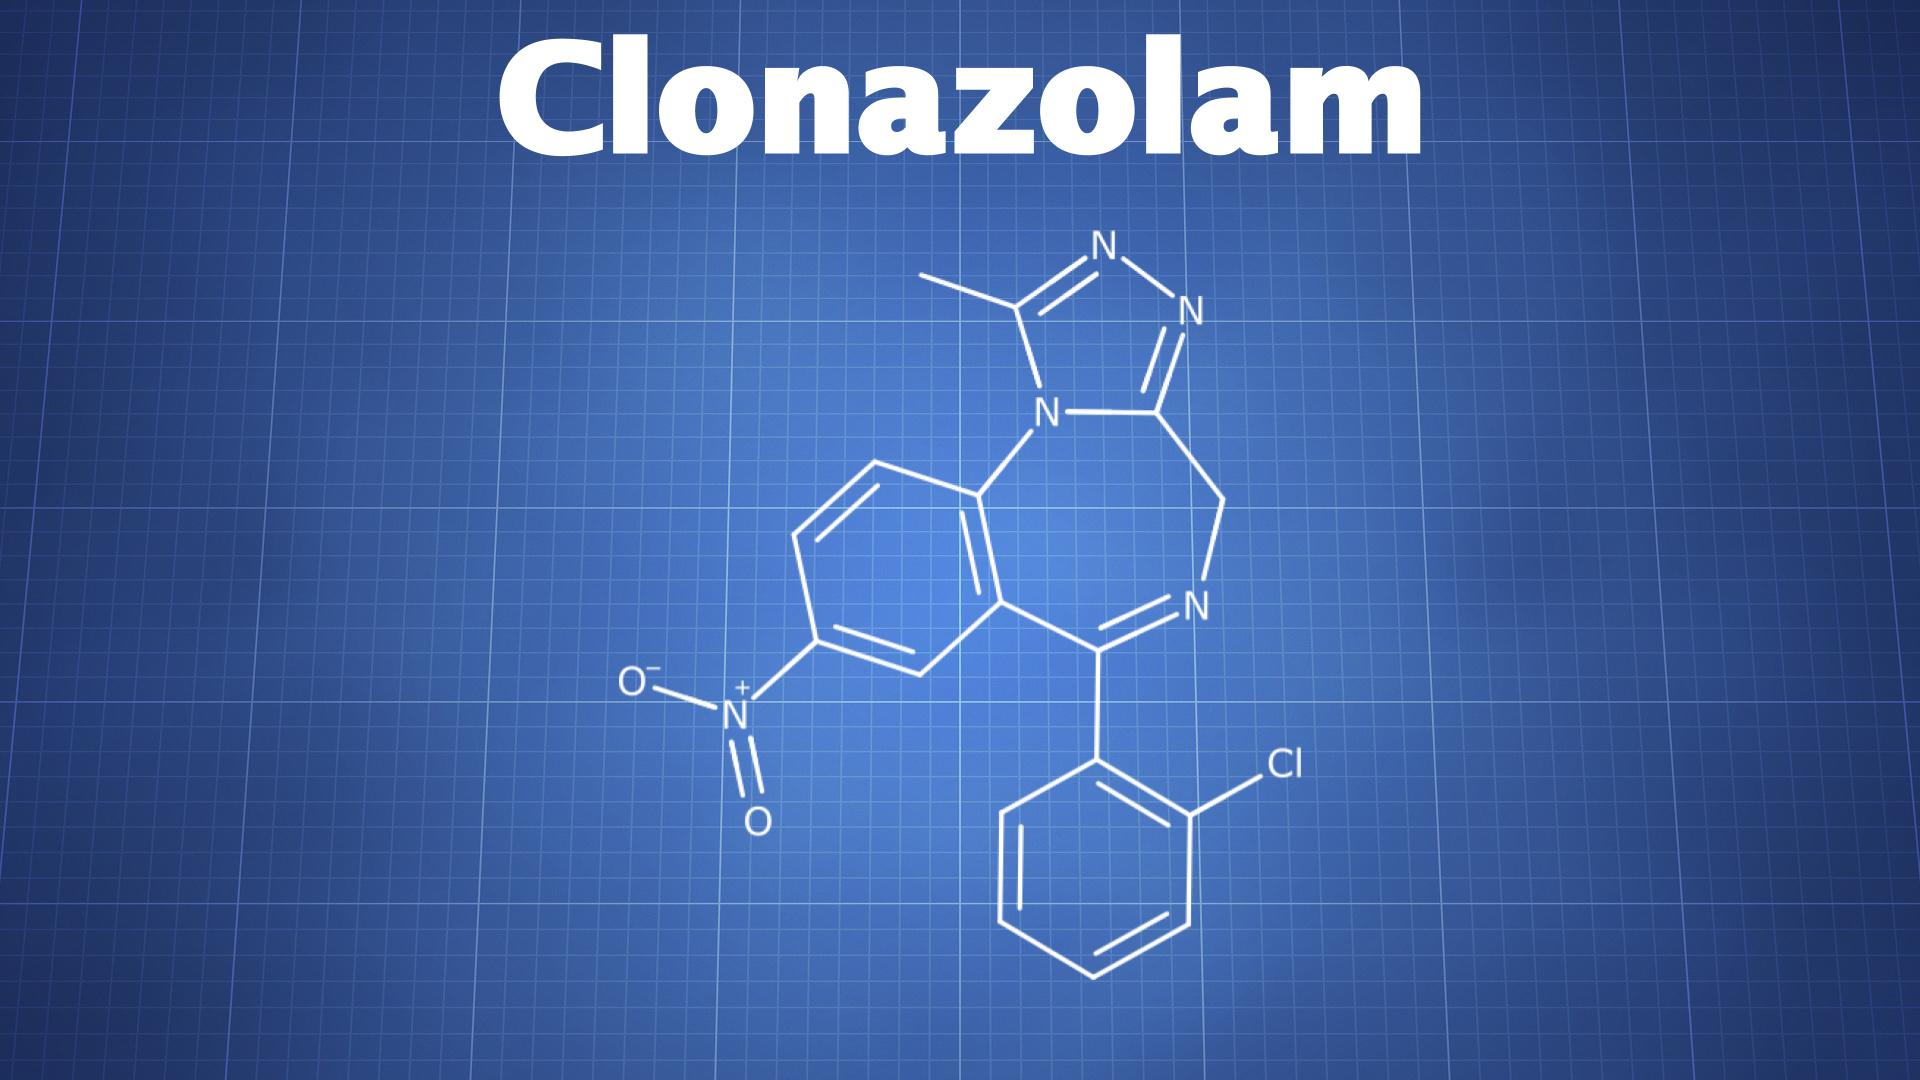 Clonazolam - The Drug Classroom